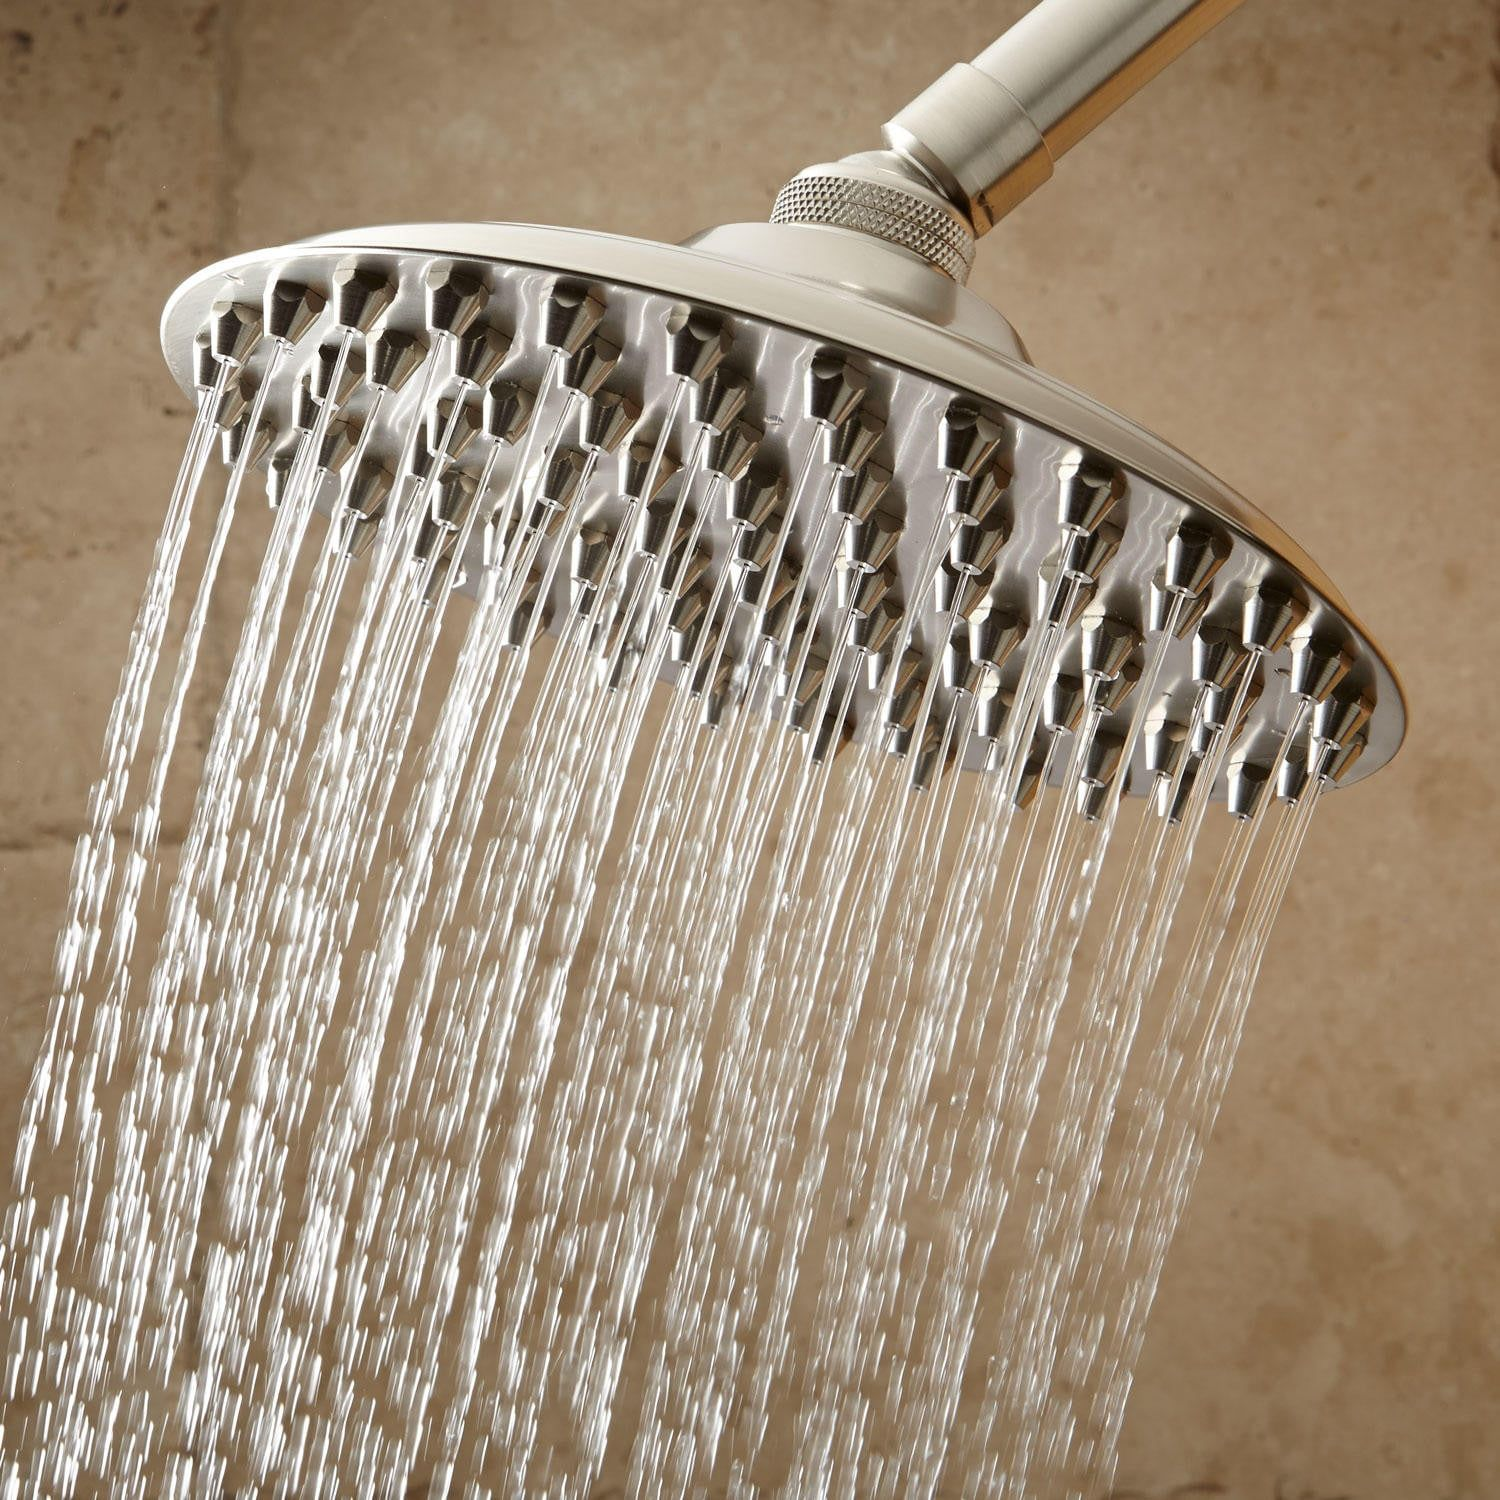 Bostonian Rainfall Nozzle Shower Head Shower Heads And Arms